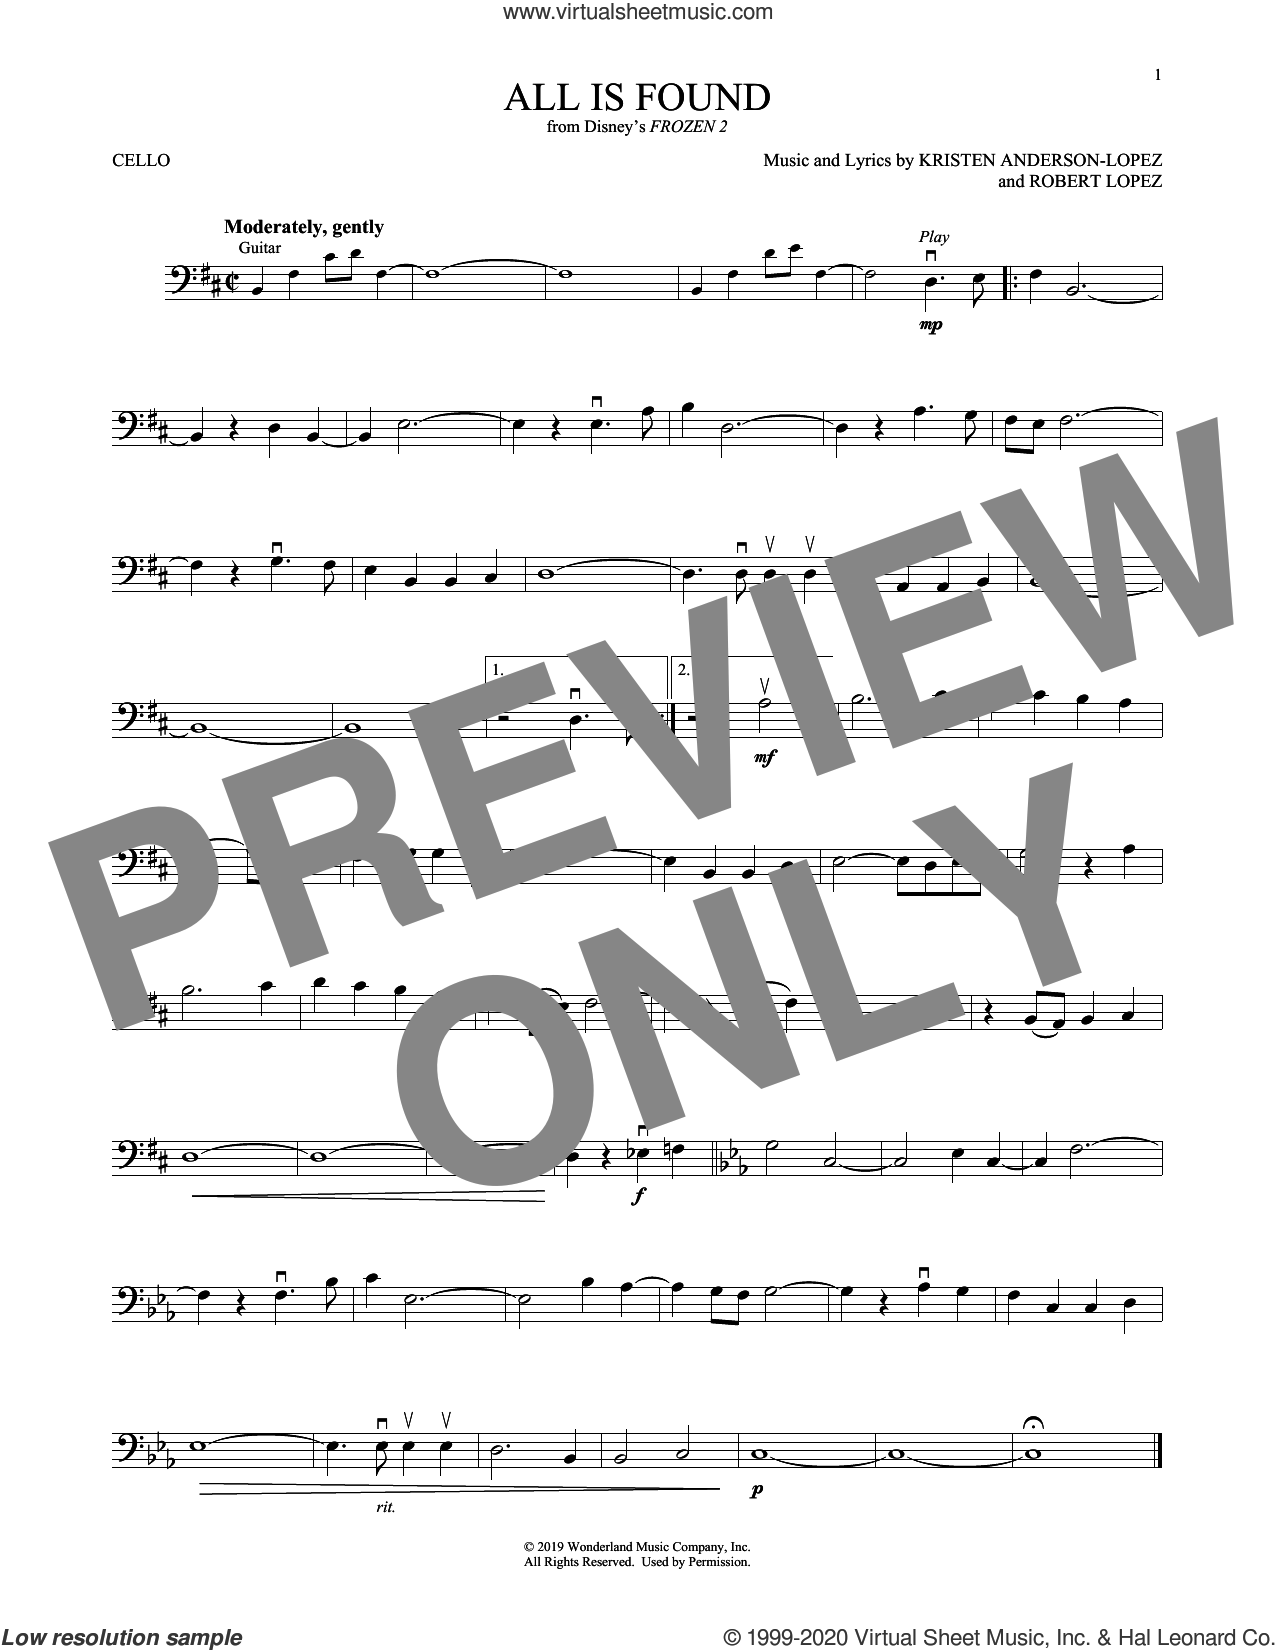 All Is Found (from Disney's Frozen 2) sheet music for cello solo by Evan Rachel Wood, Kristen Anderson-Lopez and Robert Lopez, intermediate skill level